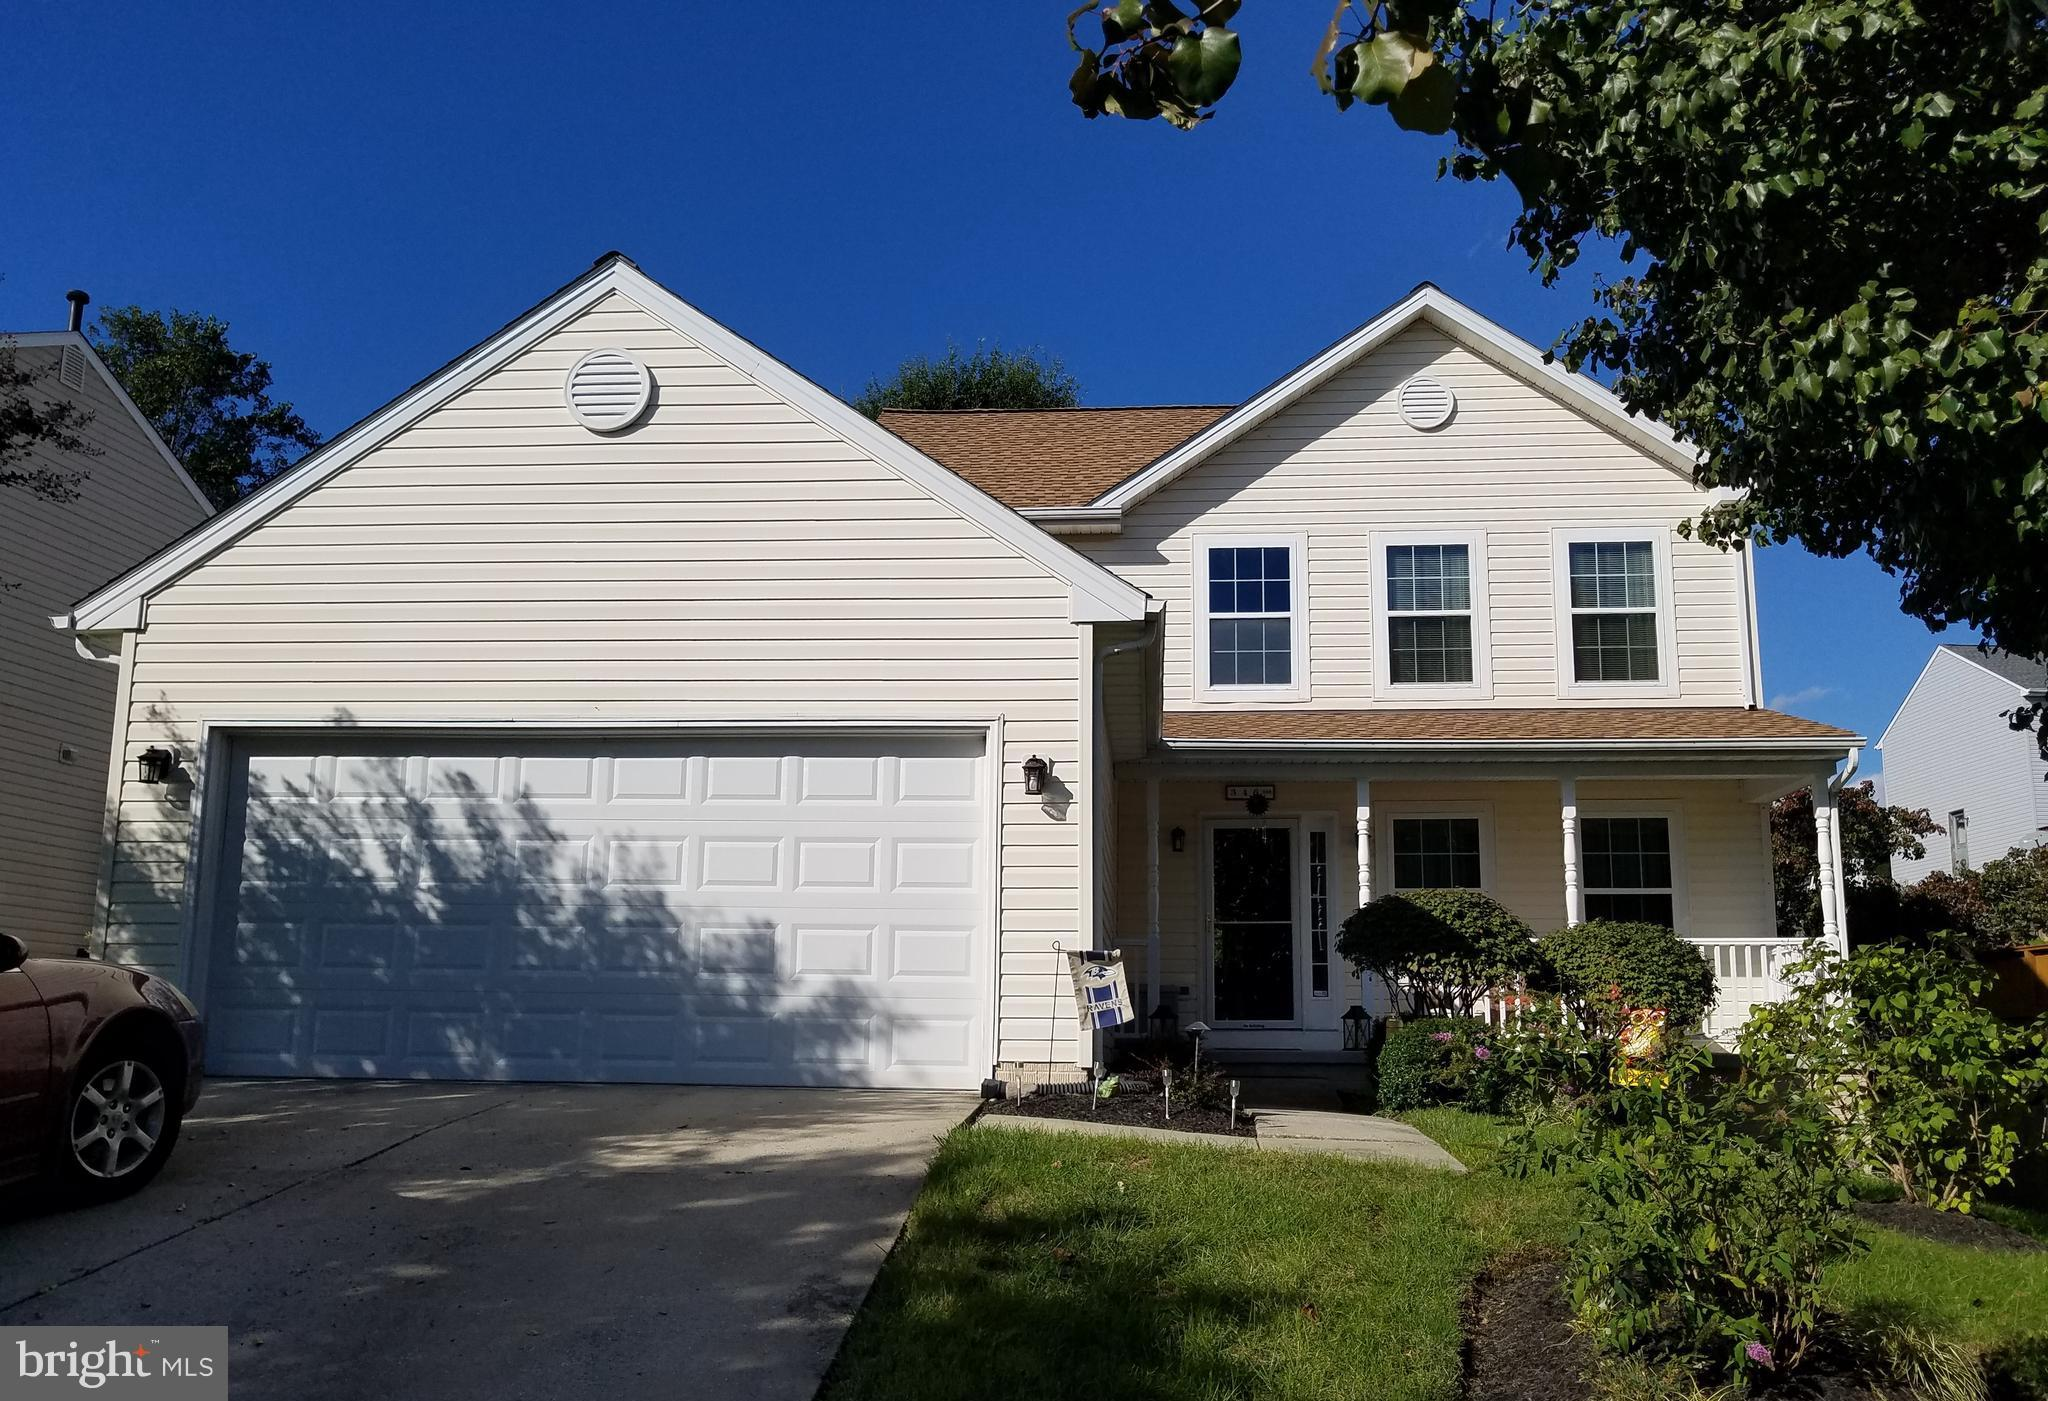 Introducing an absolutely mint condition single family home in the well-maintained community of Jopp